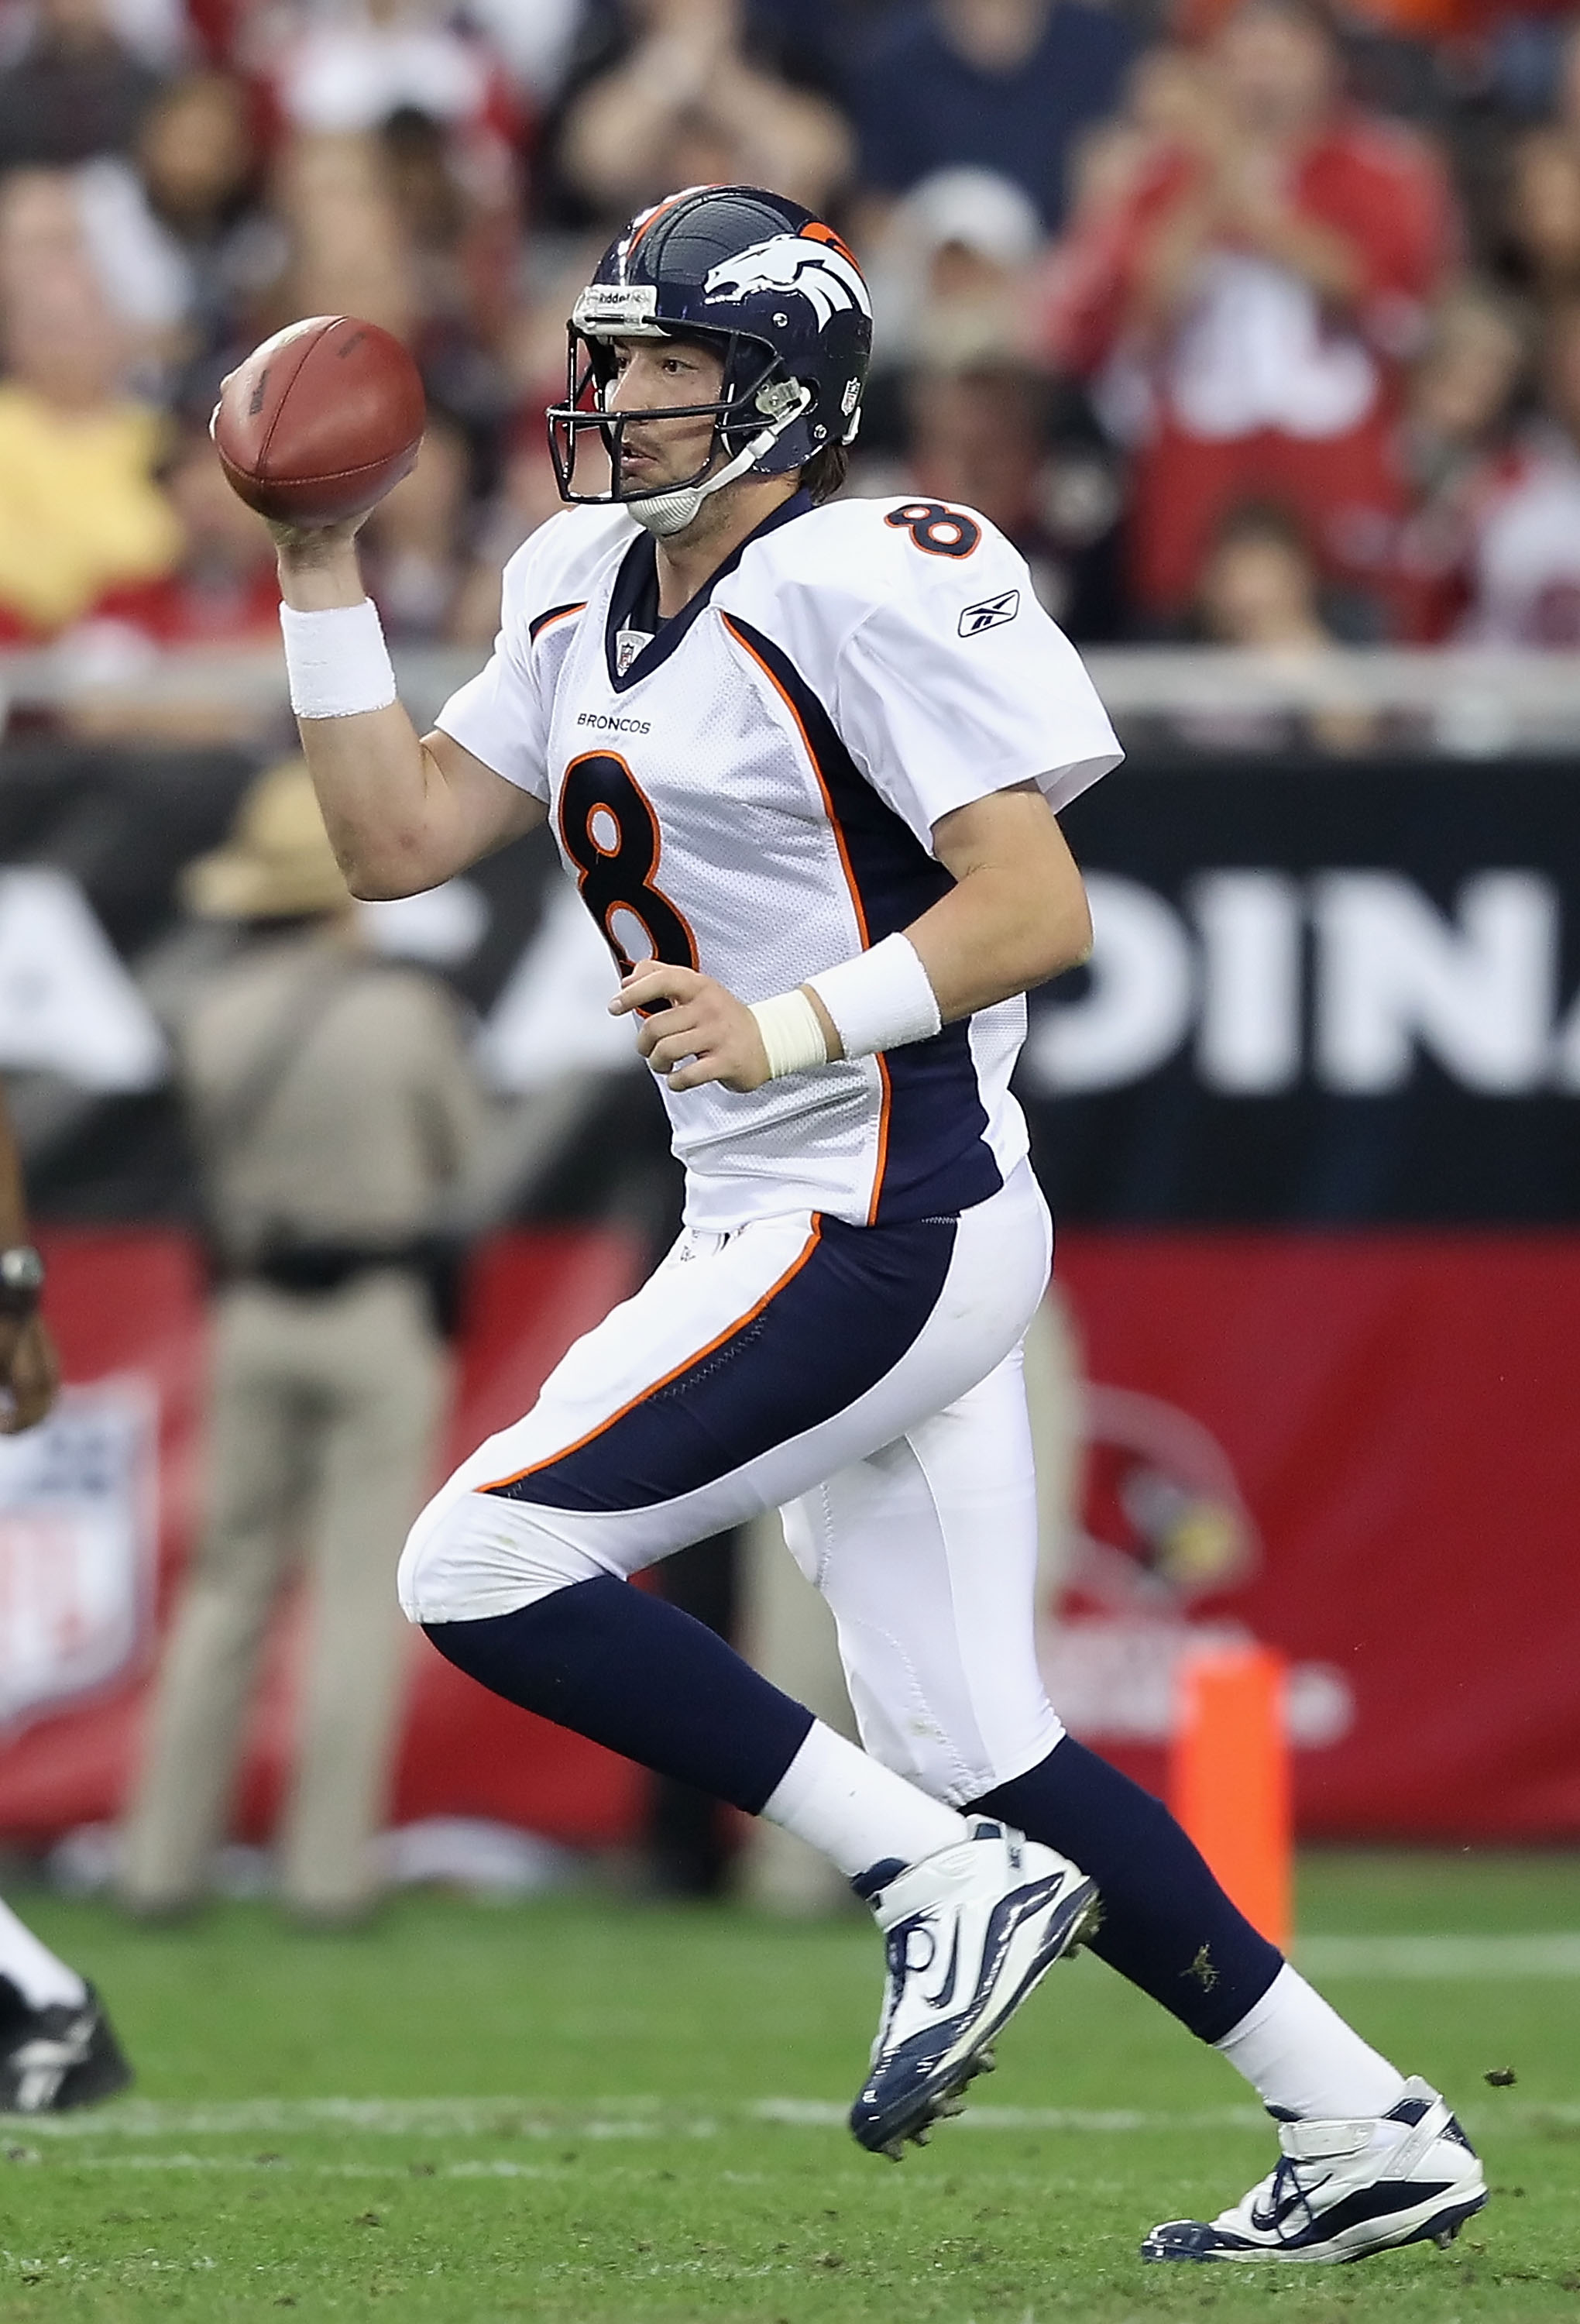 GLENDALE, AZ - DECEMBER 12:  Quarterback Kyle Orton #8 of the Denver Broncos drops back to pass during the NFL game against the Arizona Cardinals at the University of Phoenix Stadium on December 12, 2010 in Glendale, Arizona.  The Cardinals defeated the B